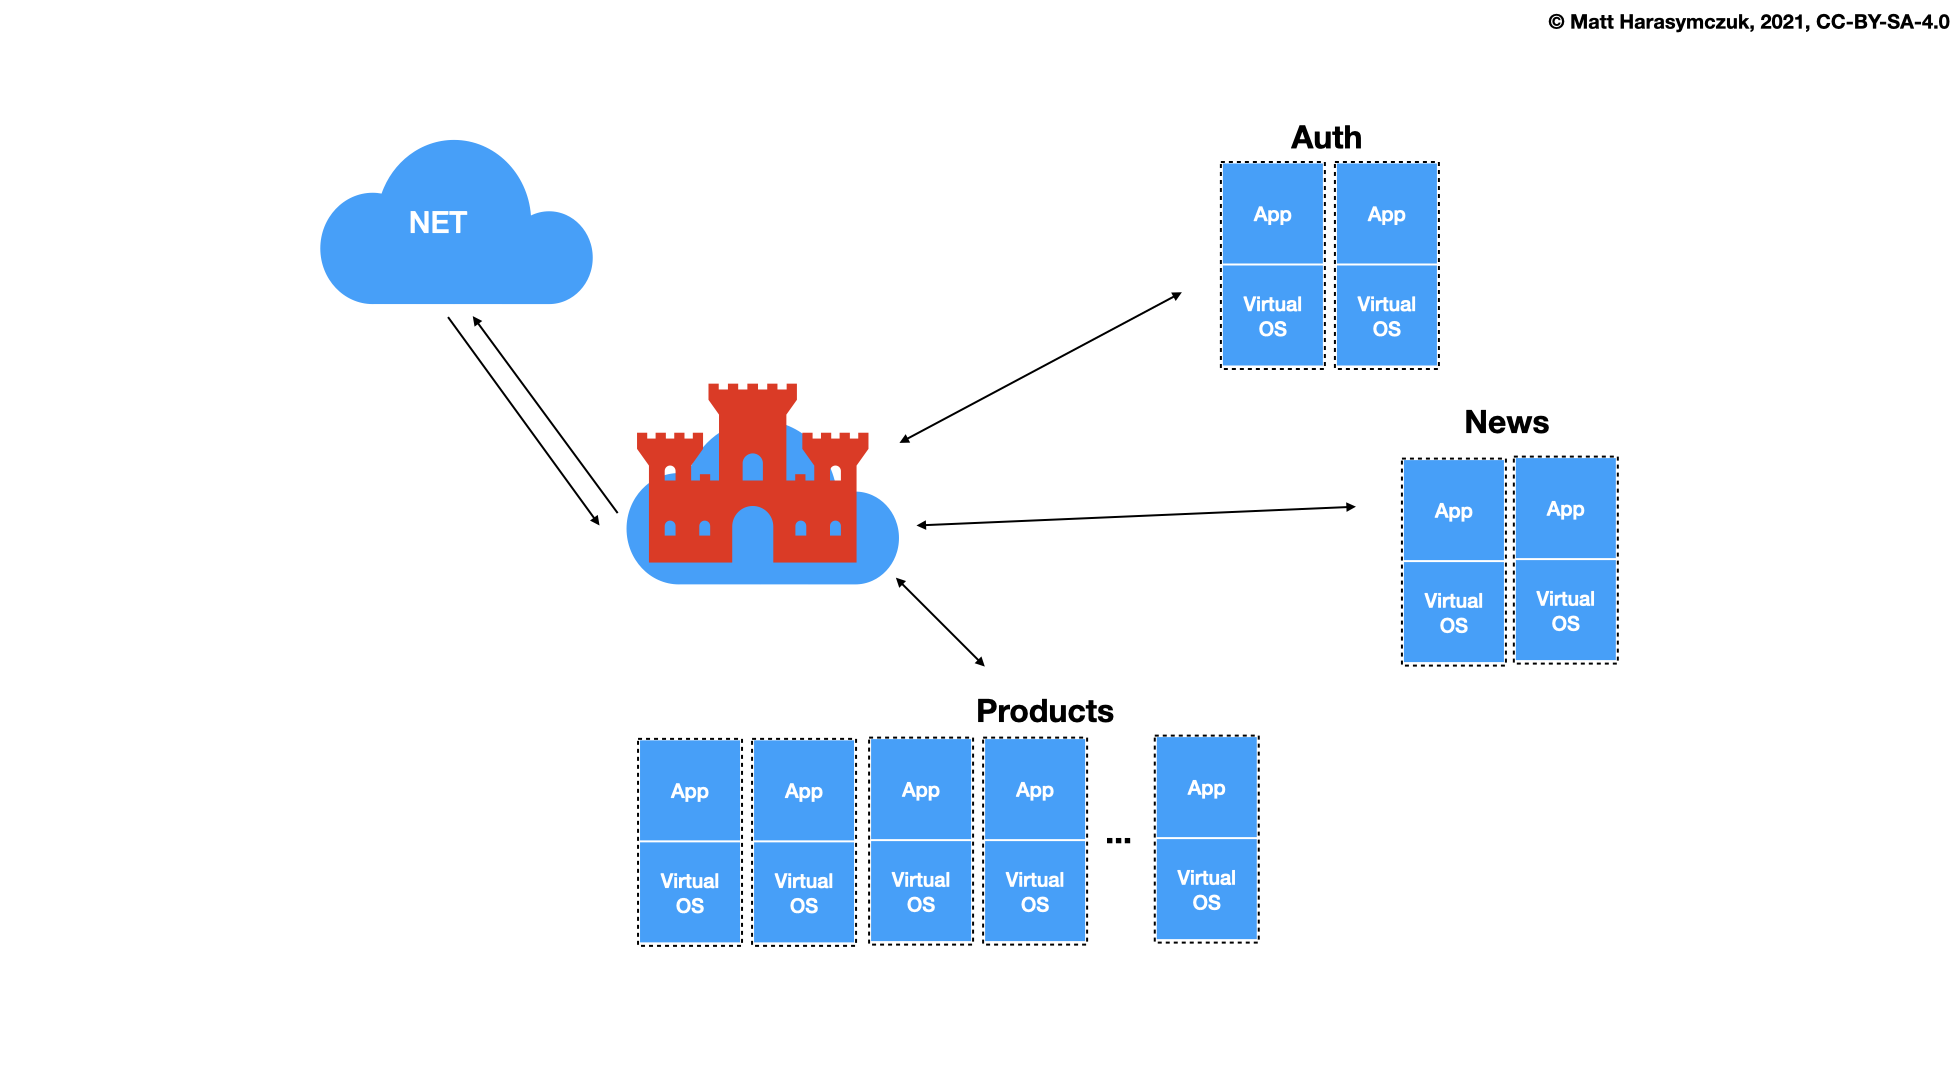 ../../_images/virt-docker-stack-06-architecture.png